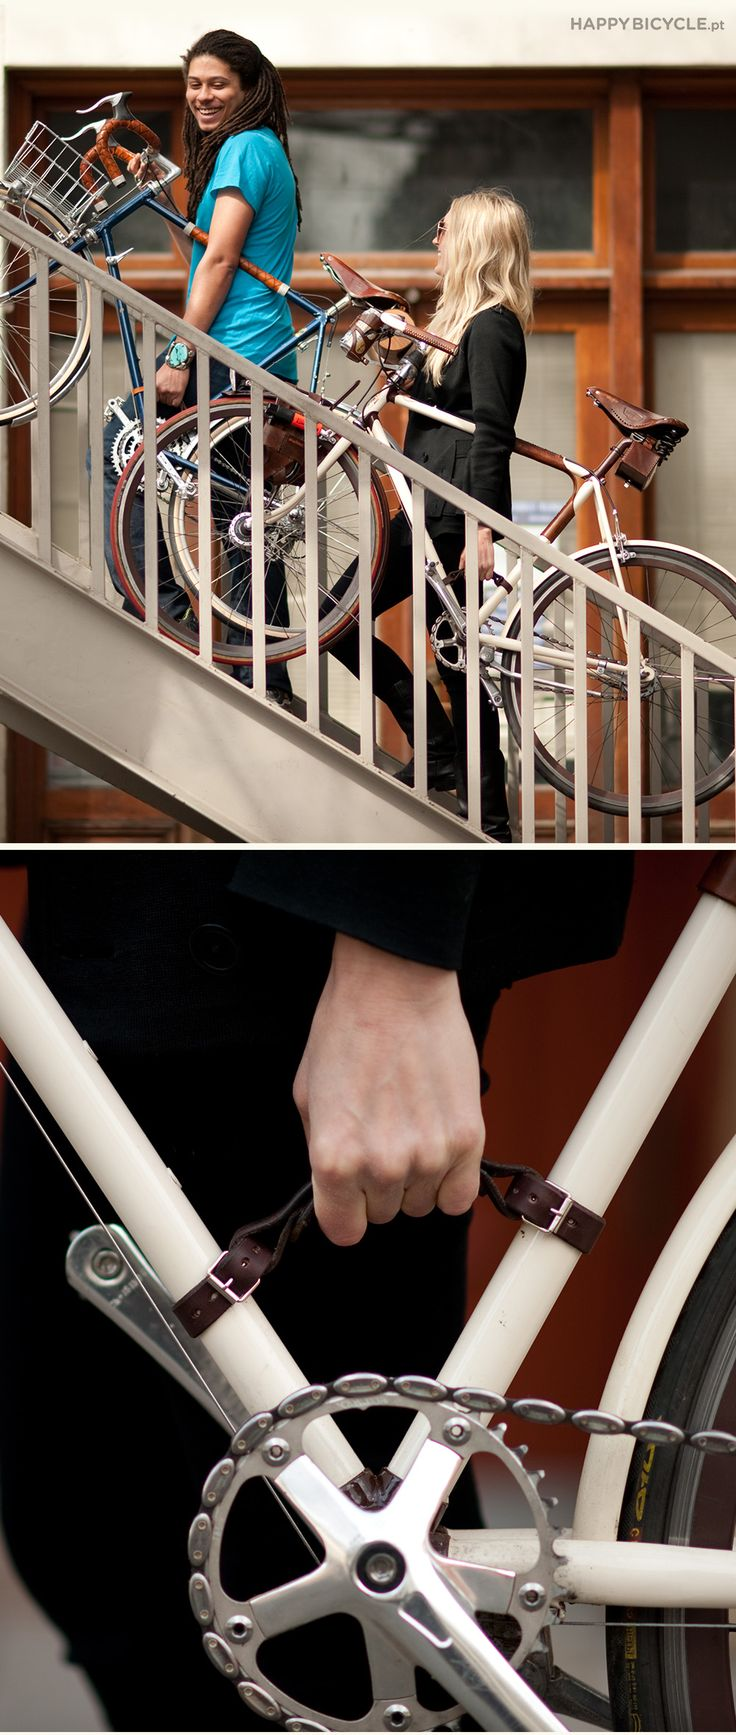 """Bike Frame Handle - The original bicycle frame (a.k.a. """"The Little Lifter""""!) is a comfortable, stylish, sturdy, and easy-to-use leather handle for carrying your bicycle, whether it's up the stairs, across the tracks, or onto the metro."""